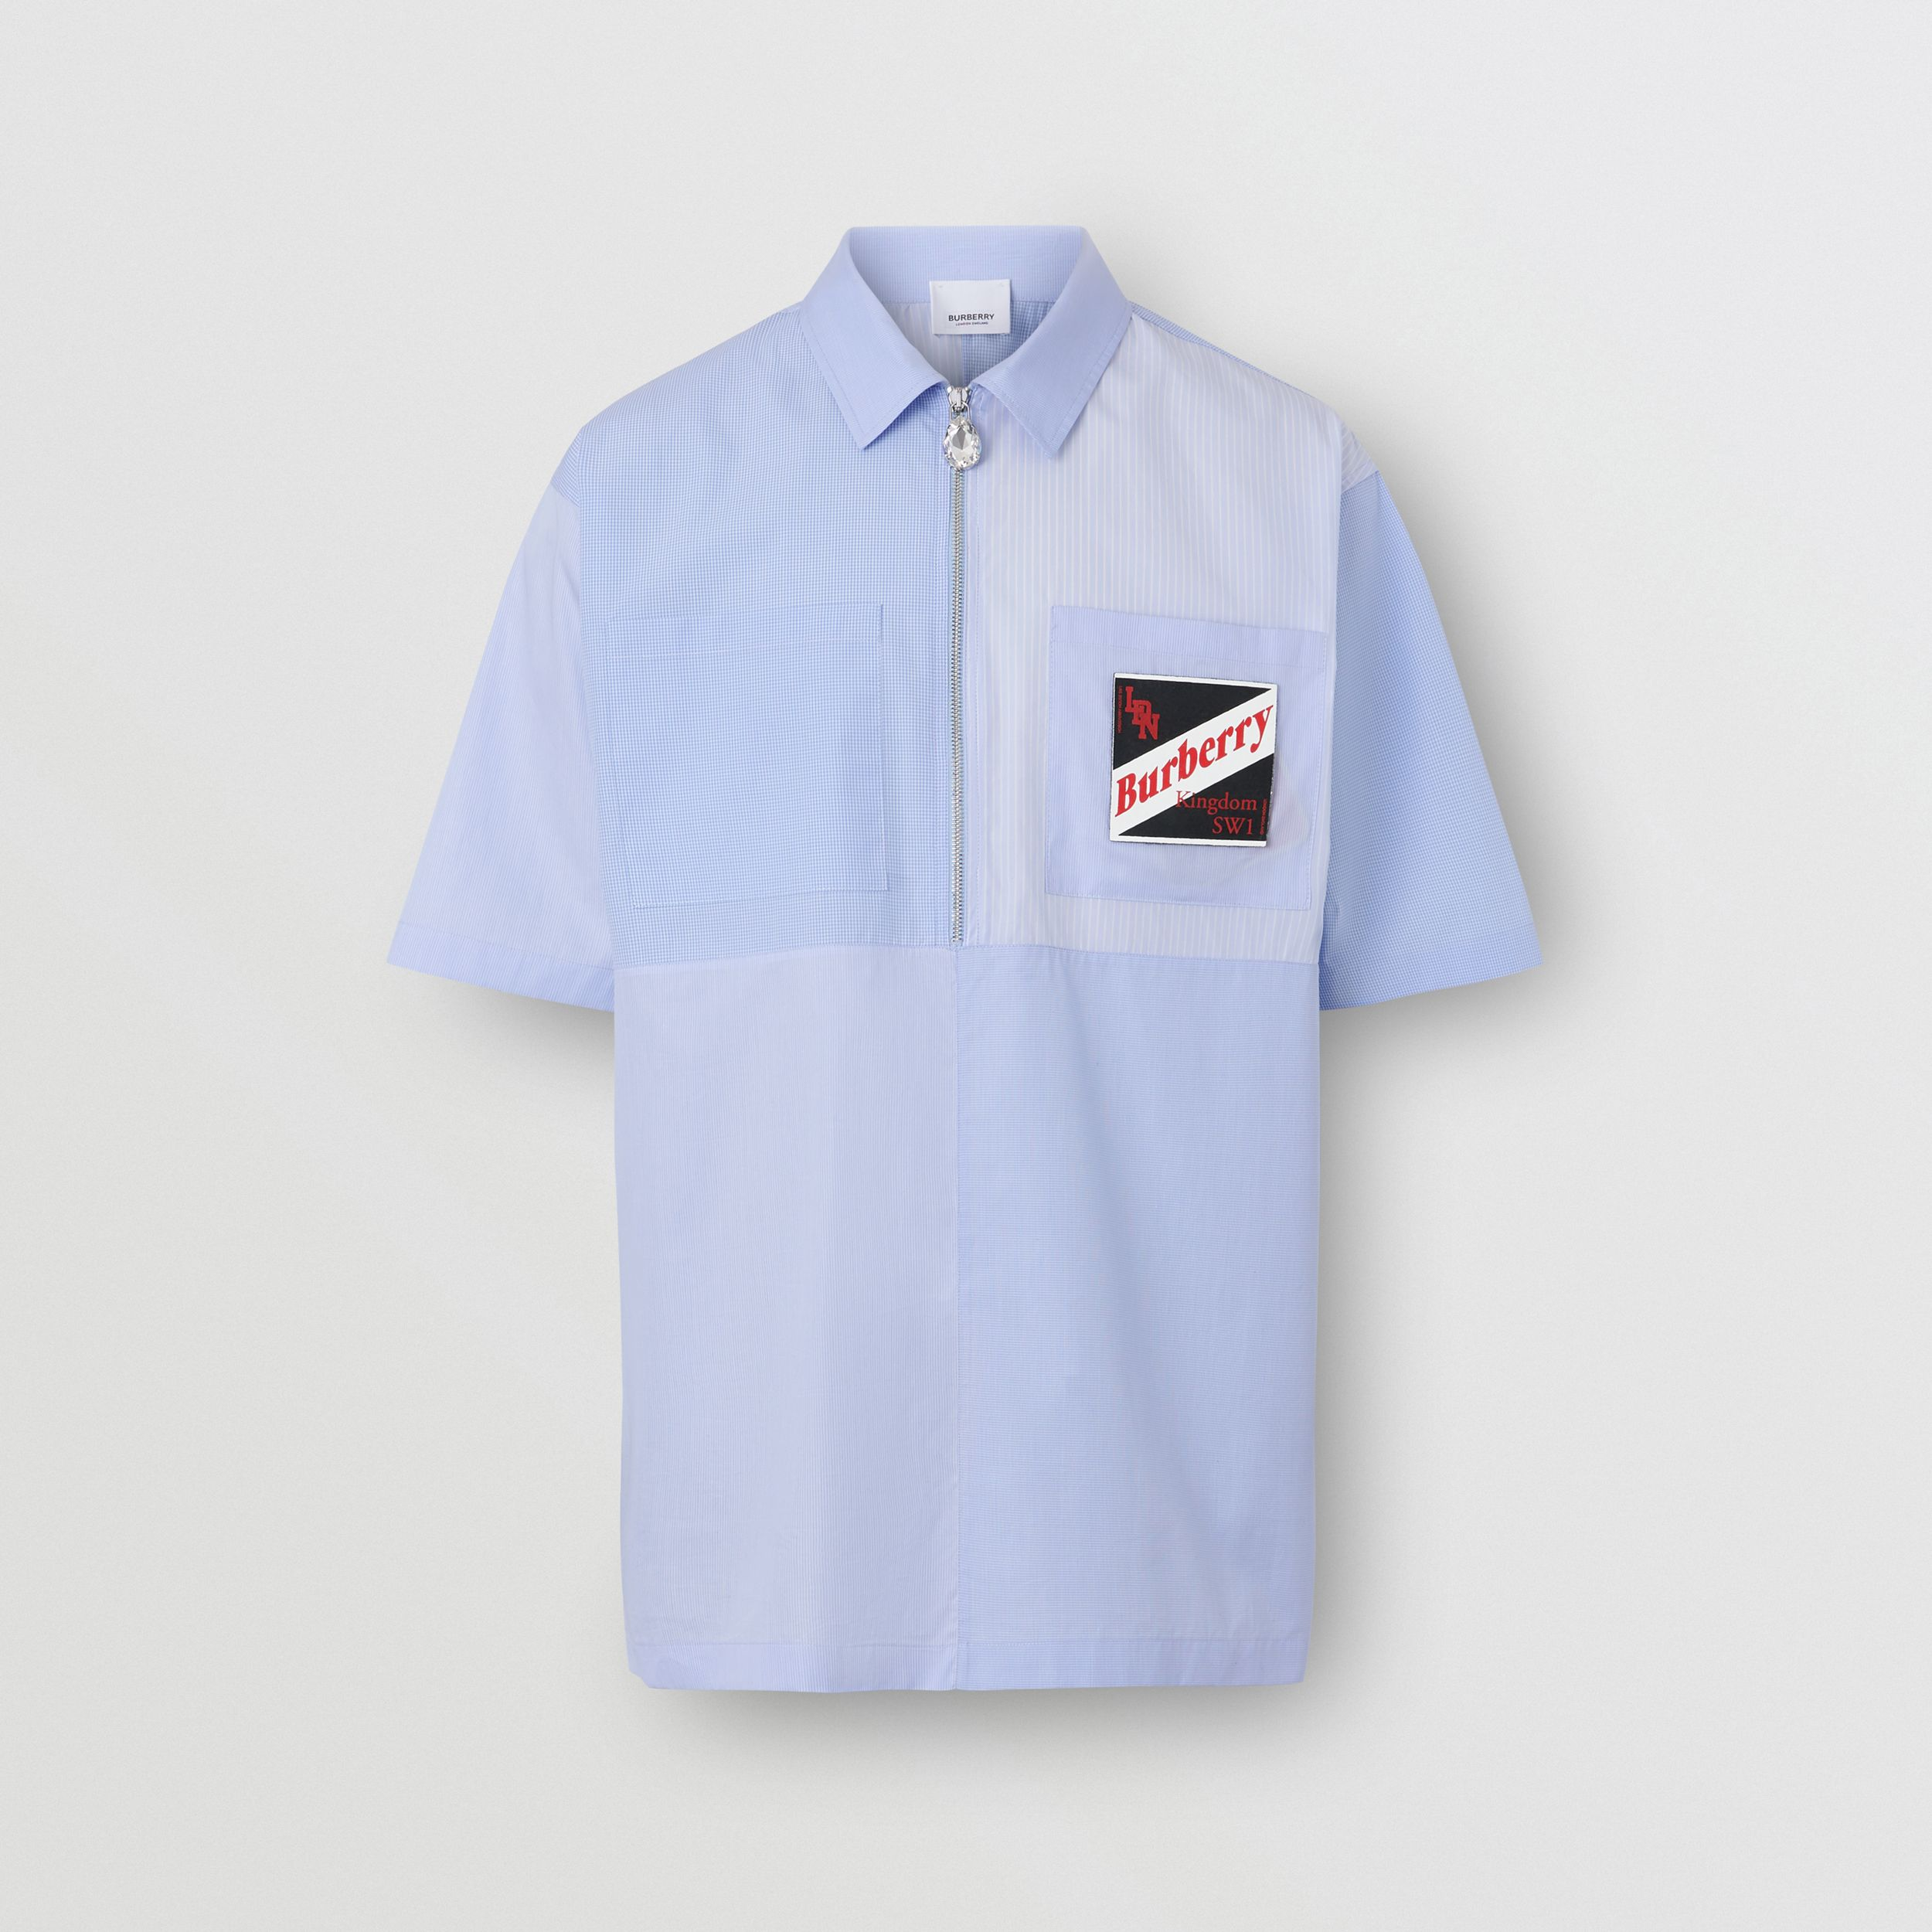 Short-sleeve Logo Graphic Patchwork Cotton Shirt in Pale Blue - Men | Burberry - 4